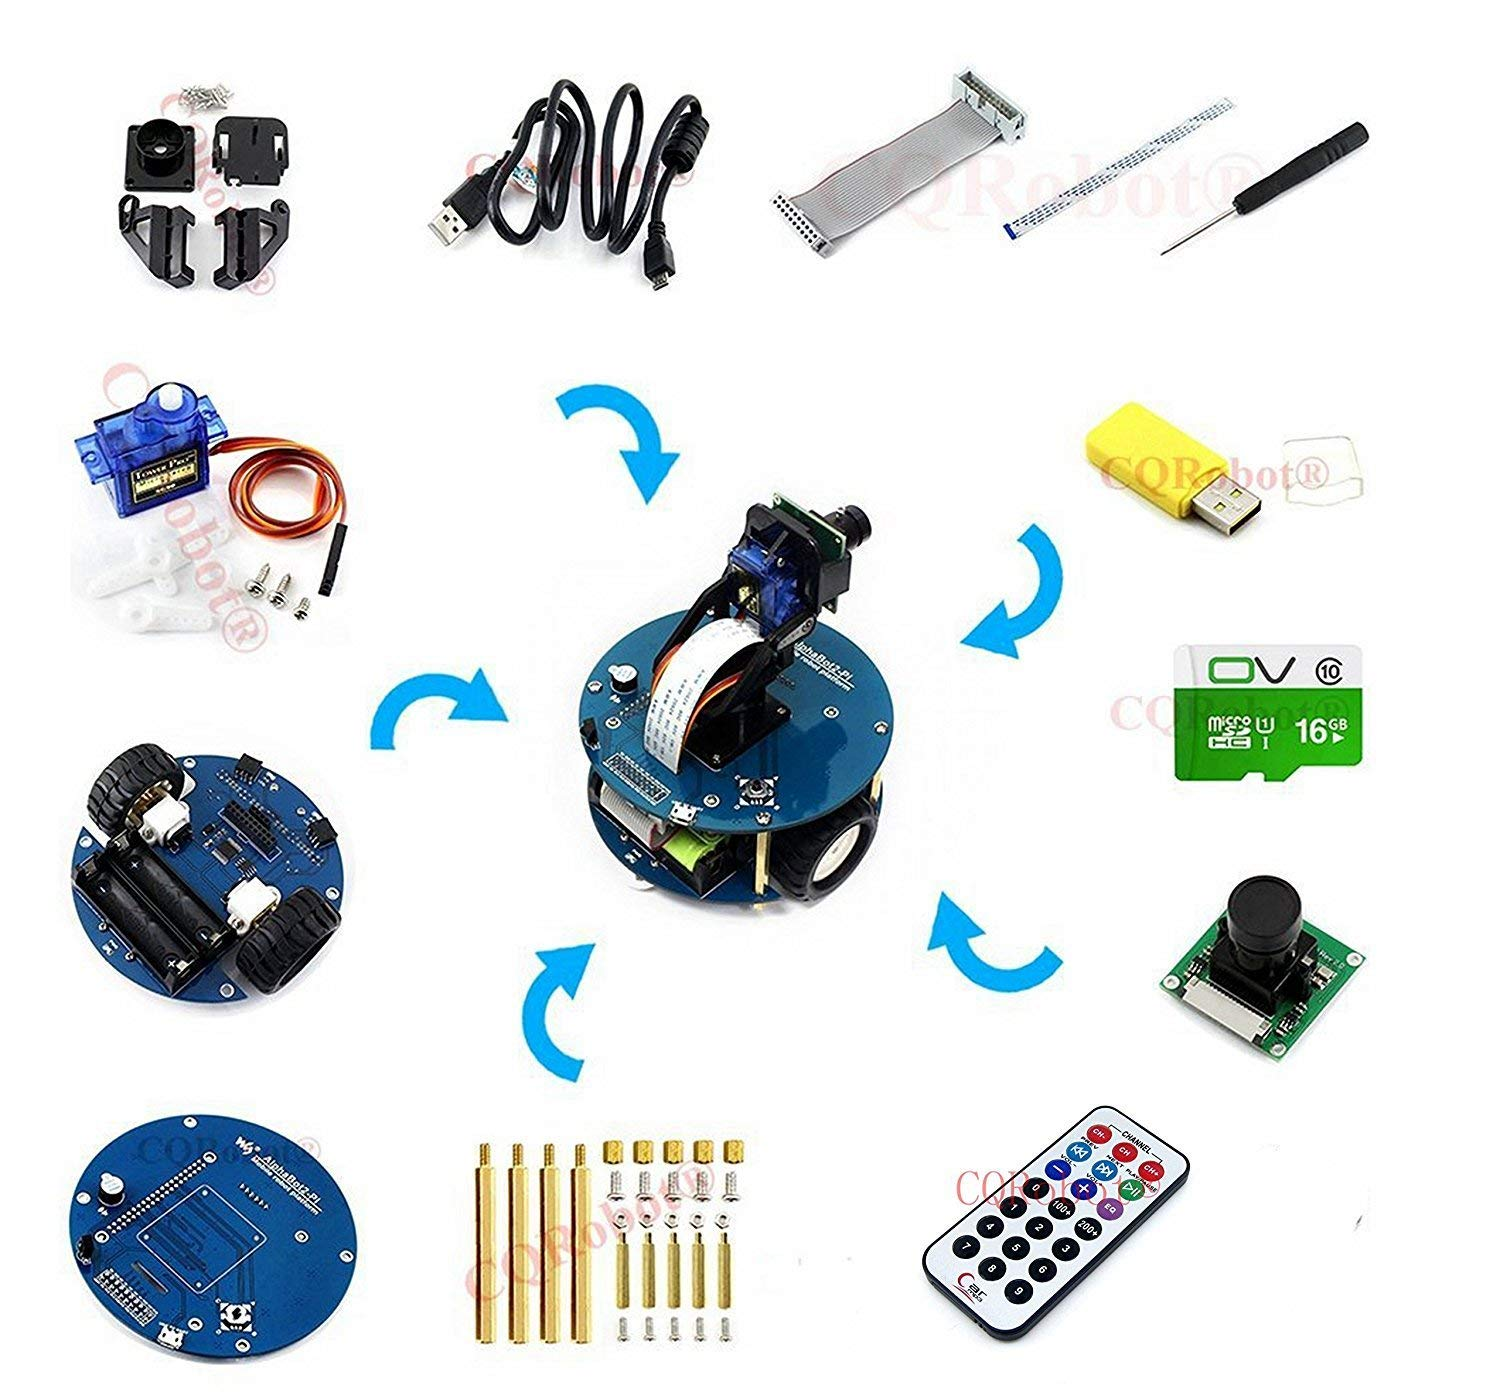 CQRobot AlphaBot2-Pi Accessory Pack (No Pi) for Raspberry Pi 3, Features Rich Common Robot Functions: Line Tracking, Obstacle Avoiding, Bluetooth/Infrared/Wifi Remote Control, Video Monitoring.